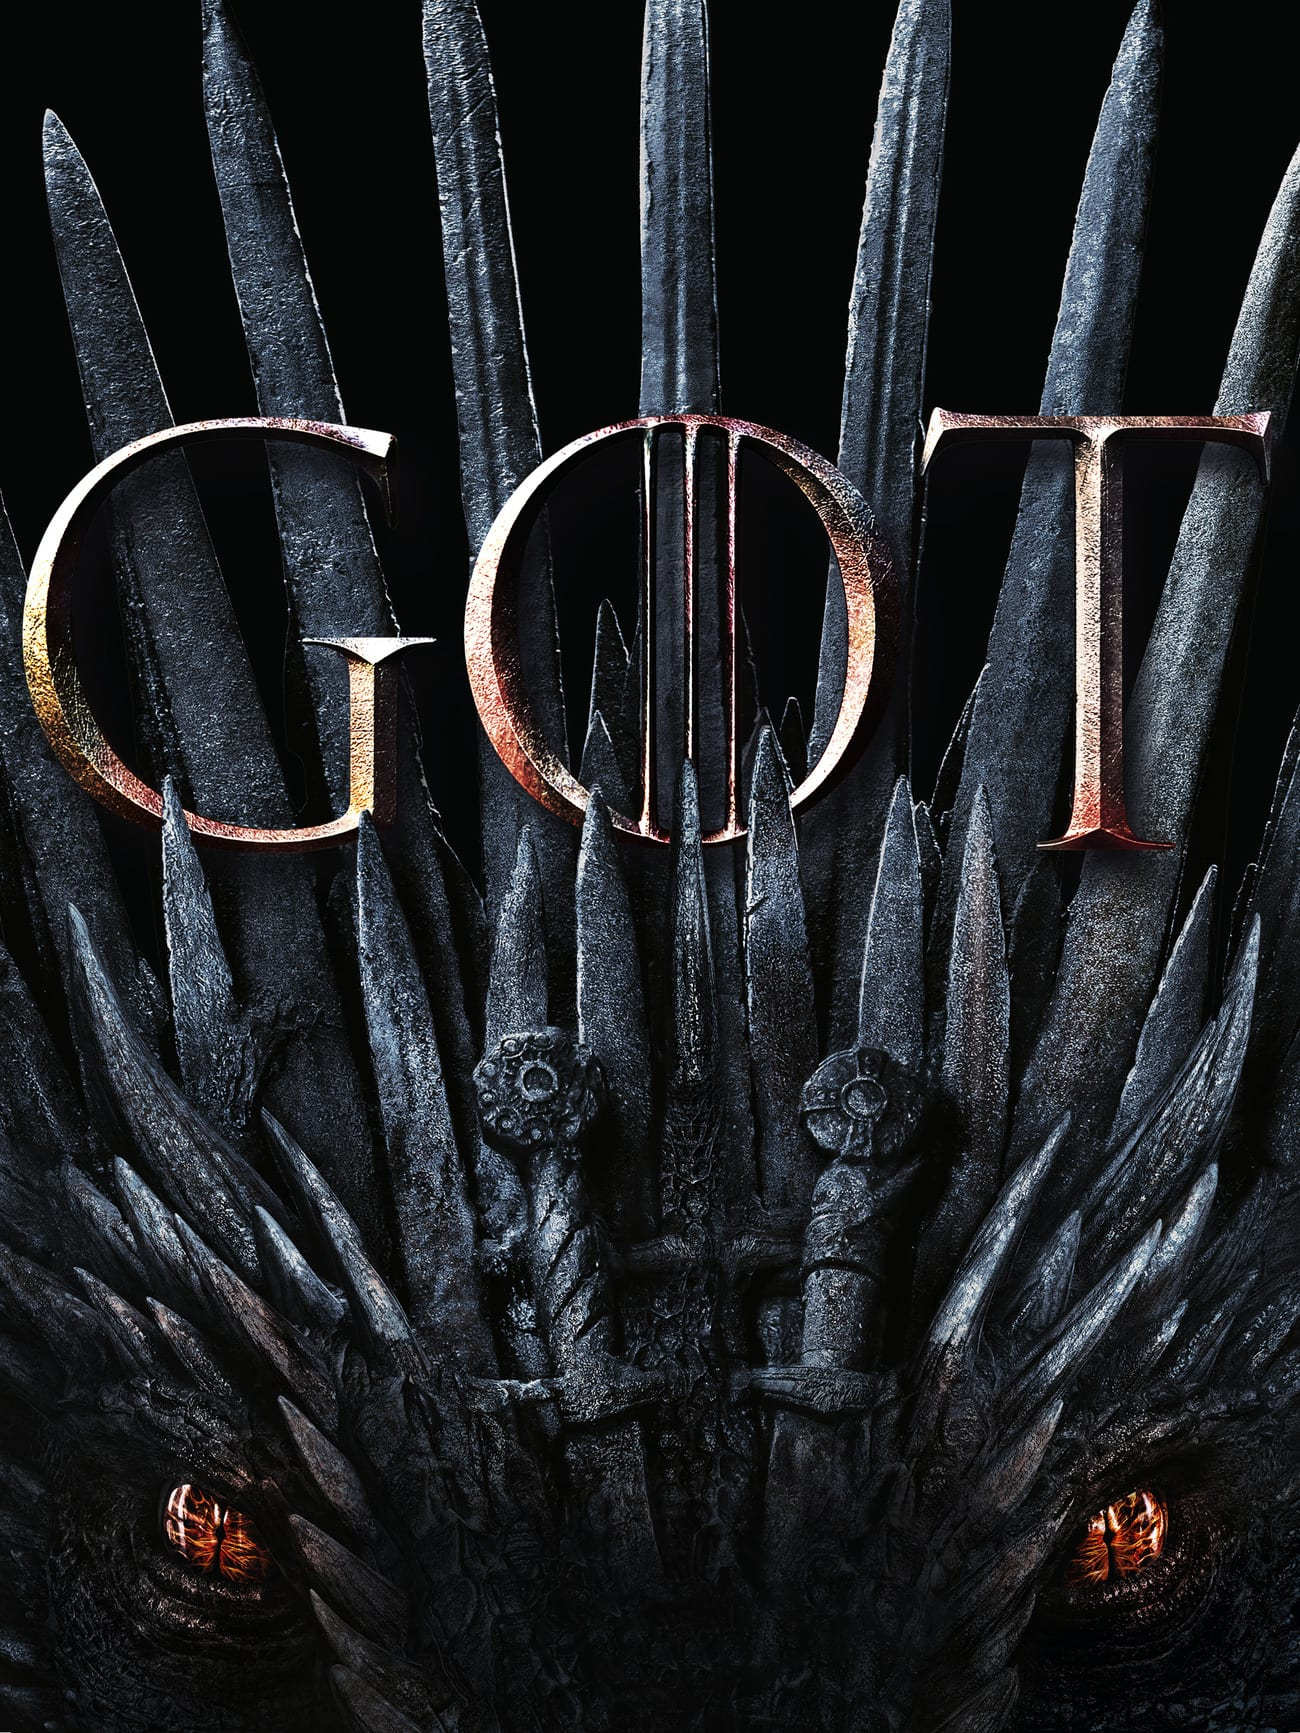 Image of Game of Thrones promotional material. Game of Thrones is on the High Five Events binge-worthy show recommendation list.